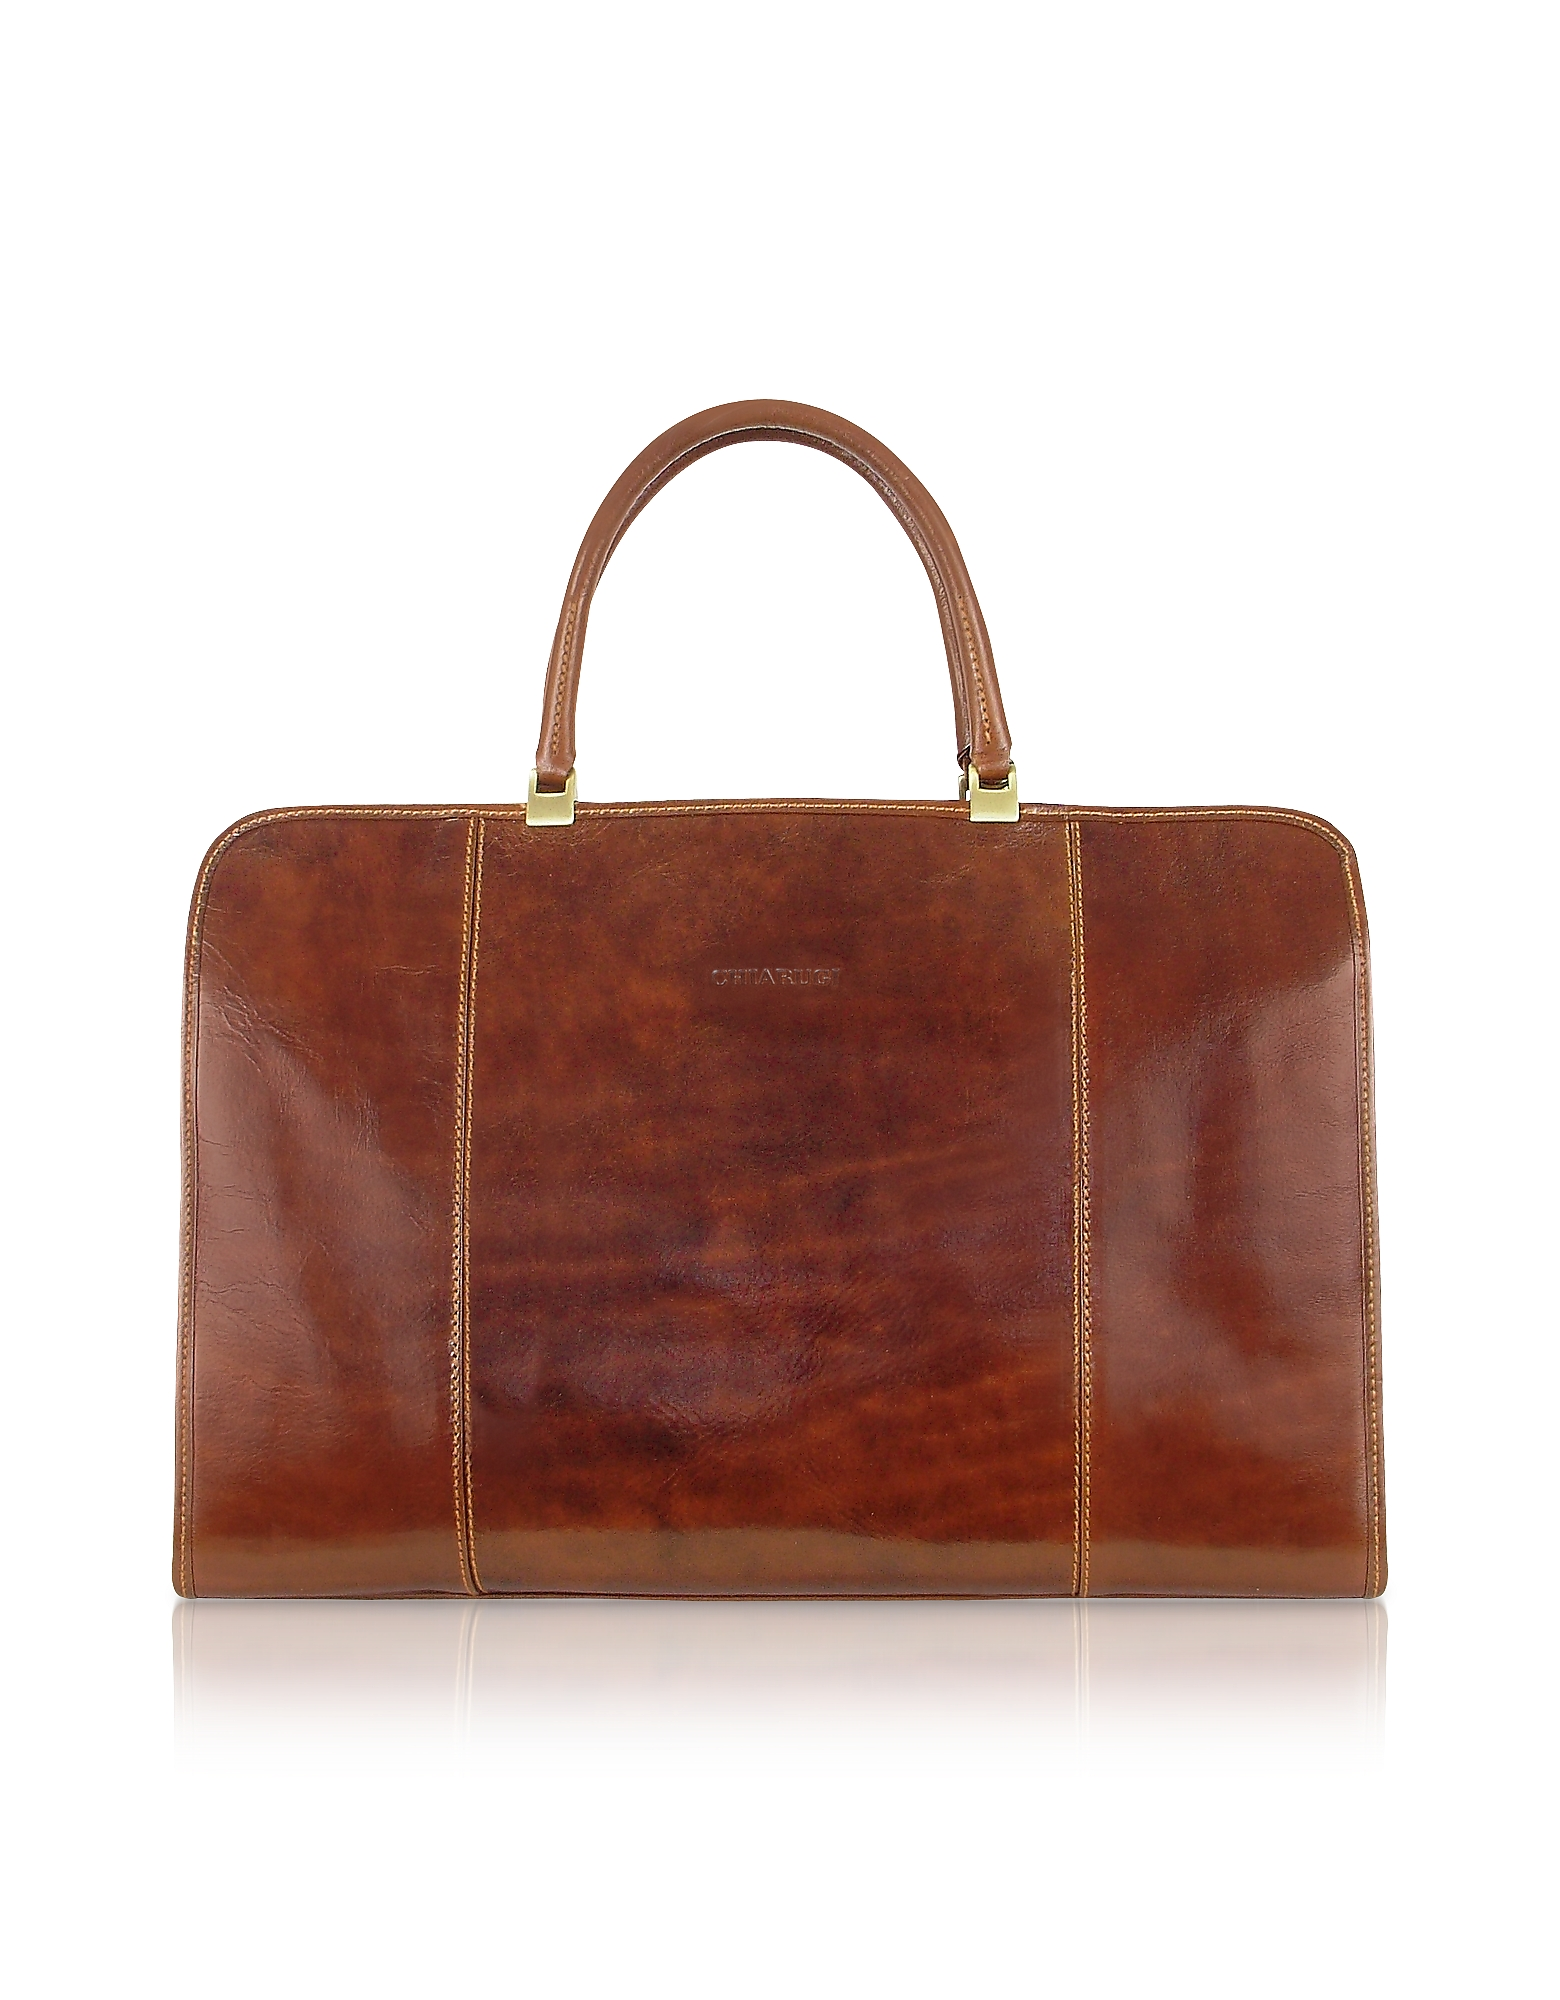 Chiarugi Briefcases, Handmade Brown Genuine Italian Leather Business Bag